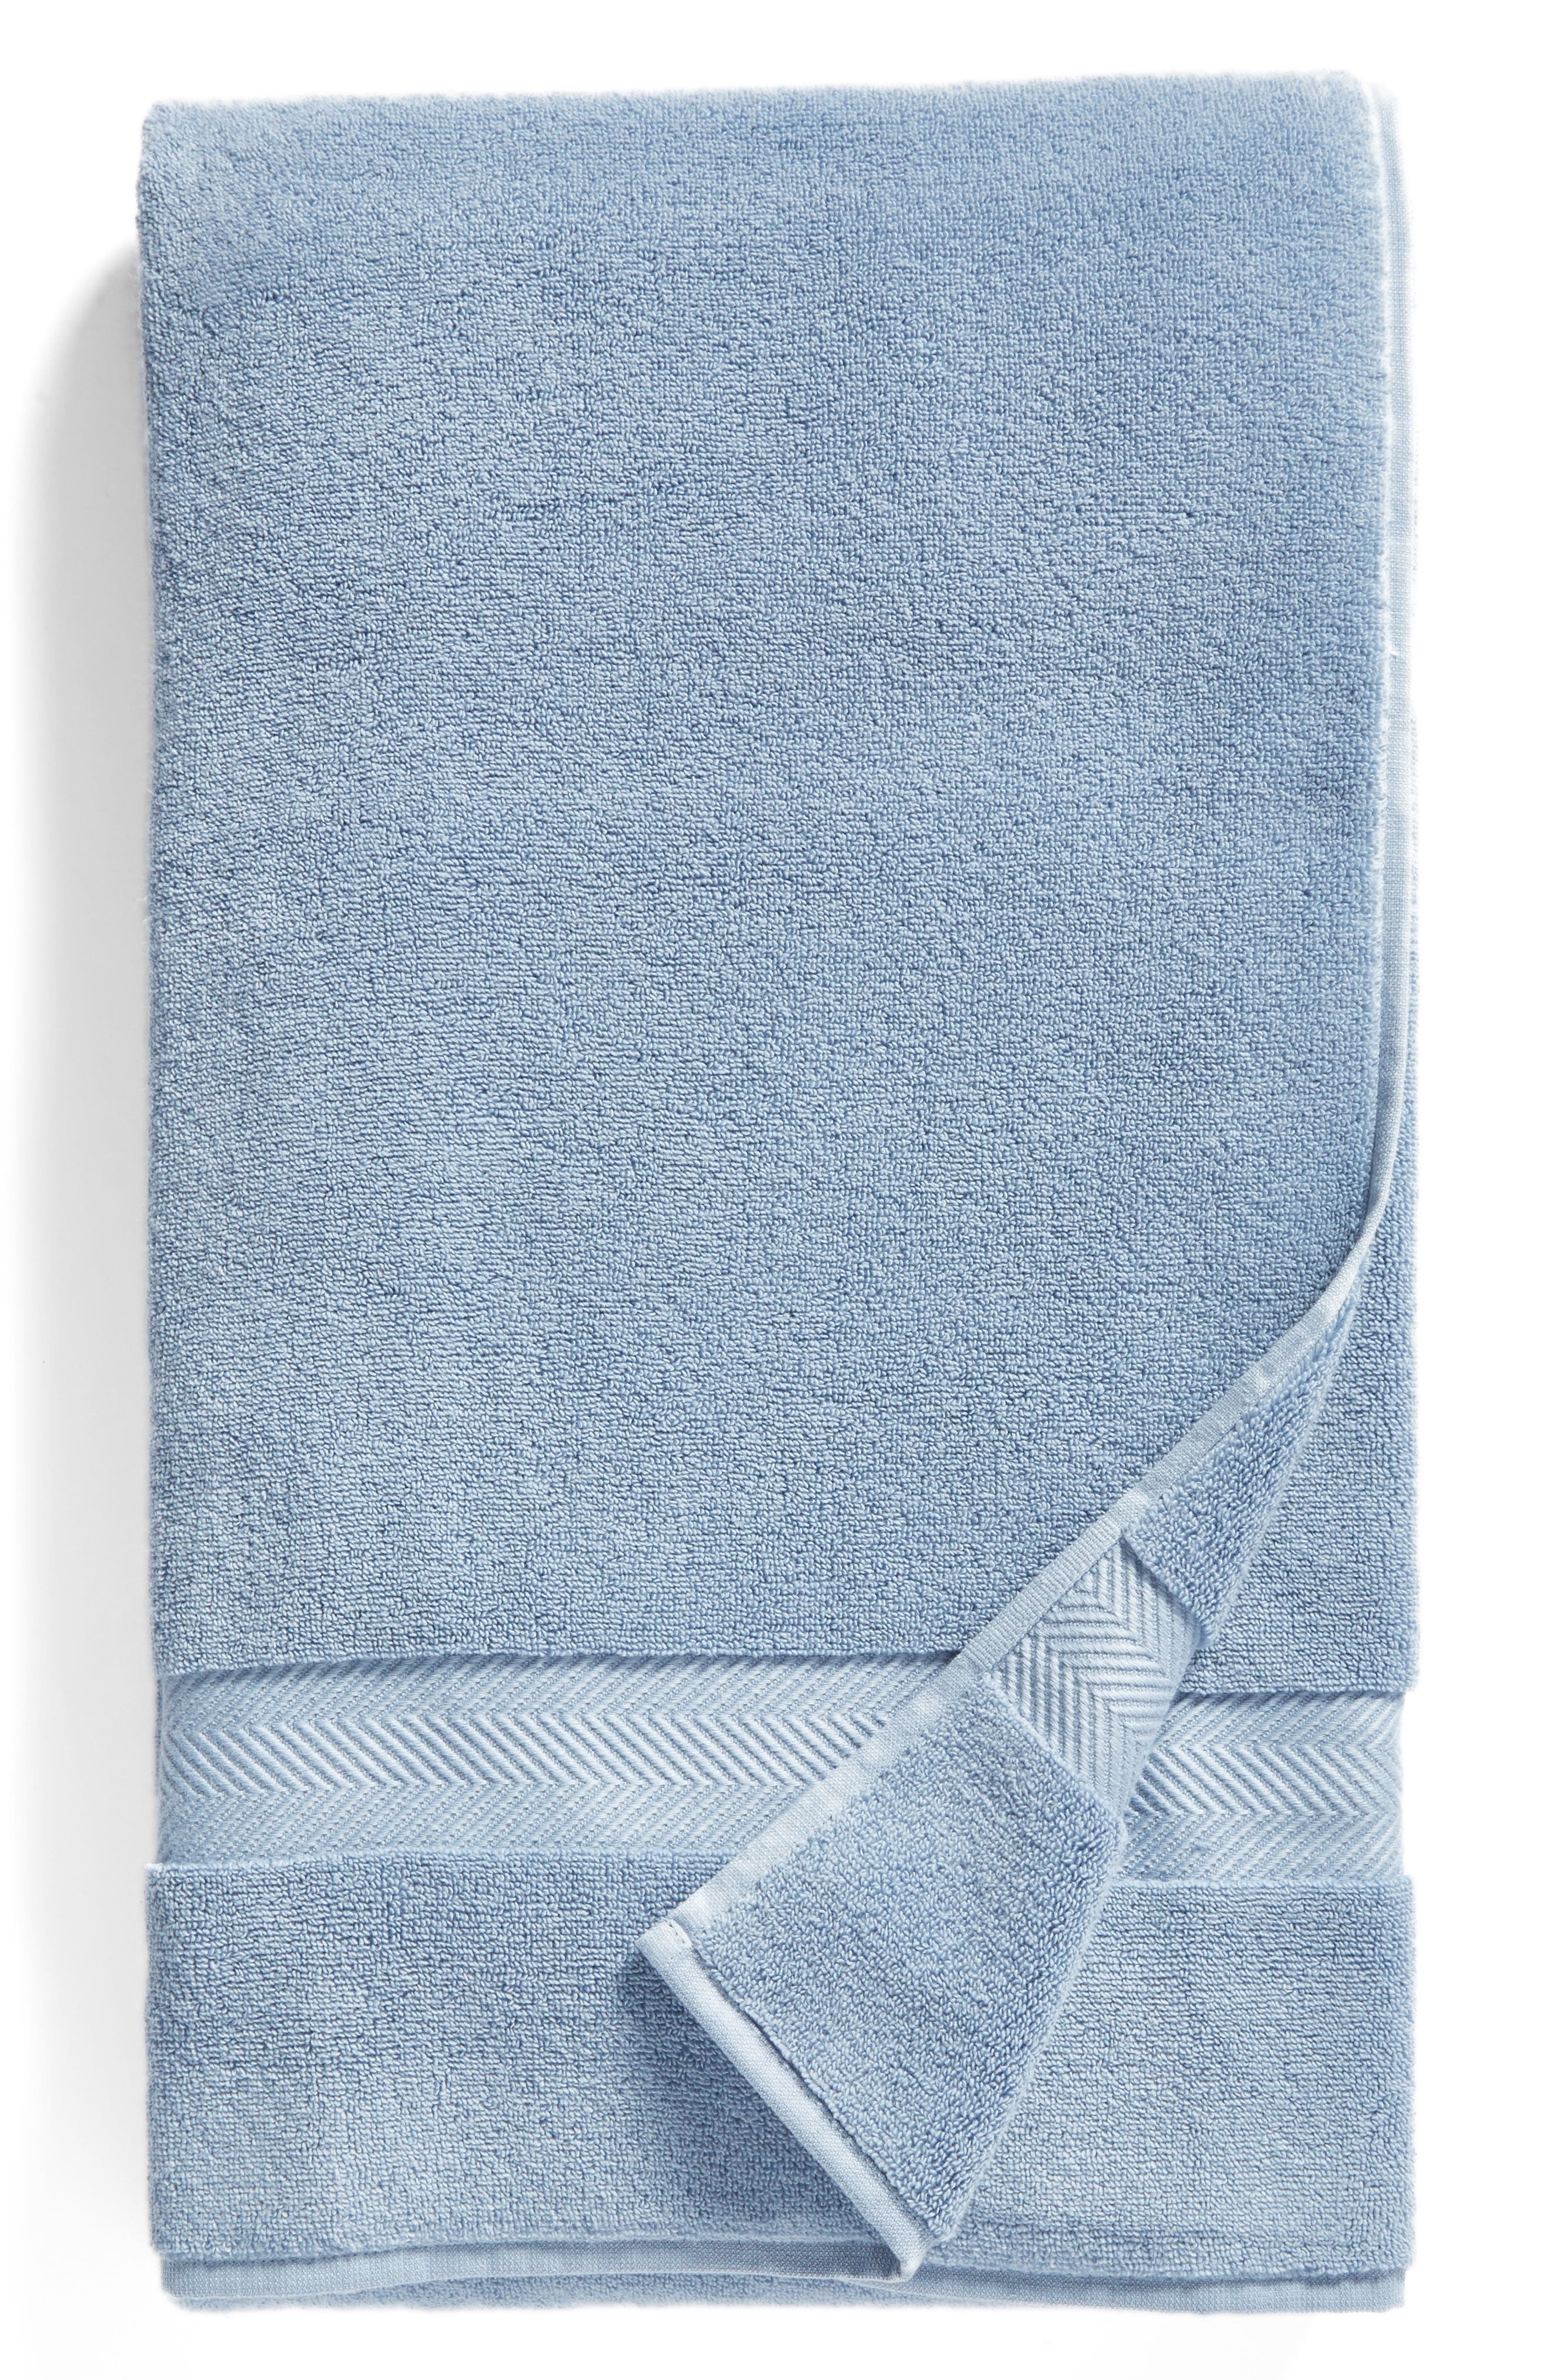 Nordstrom at Home Hydrocotton Bath Sheet (2 for $92)